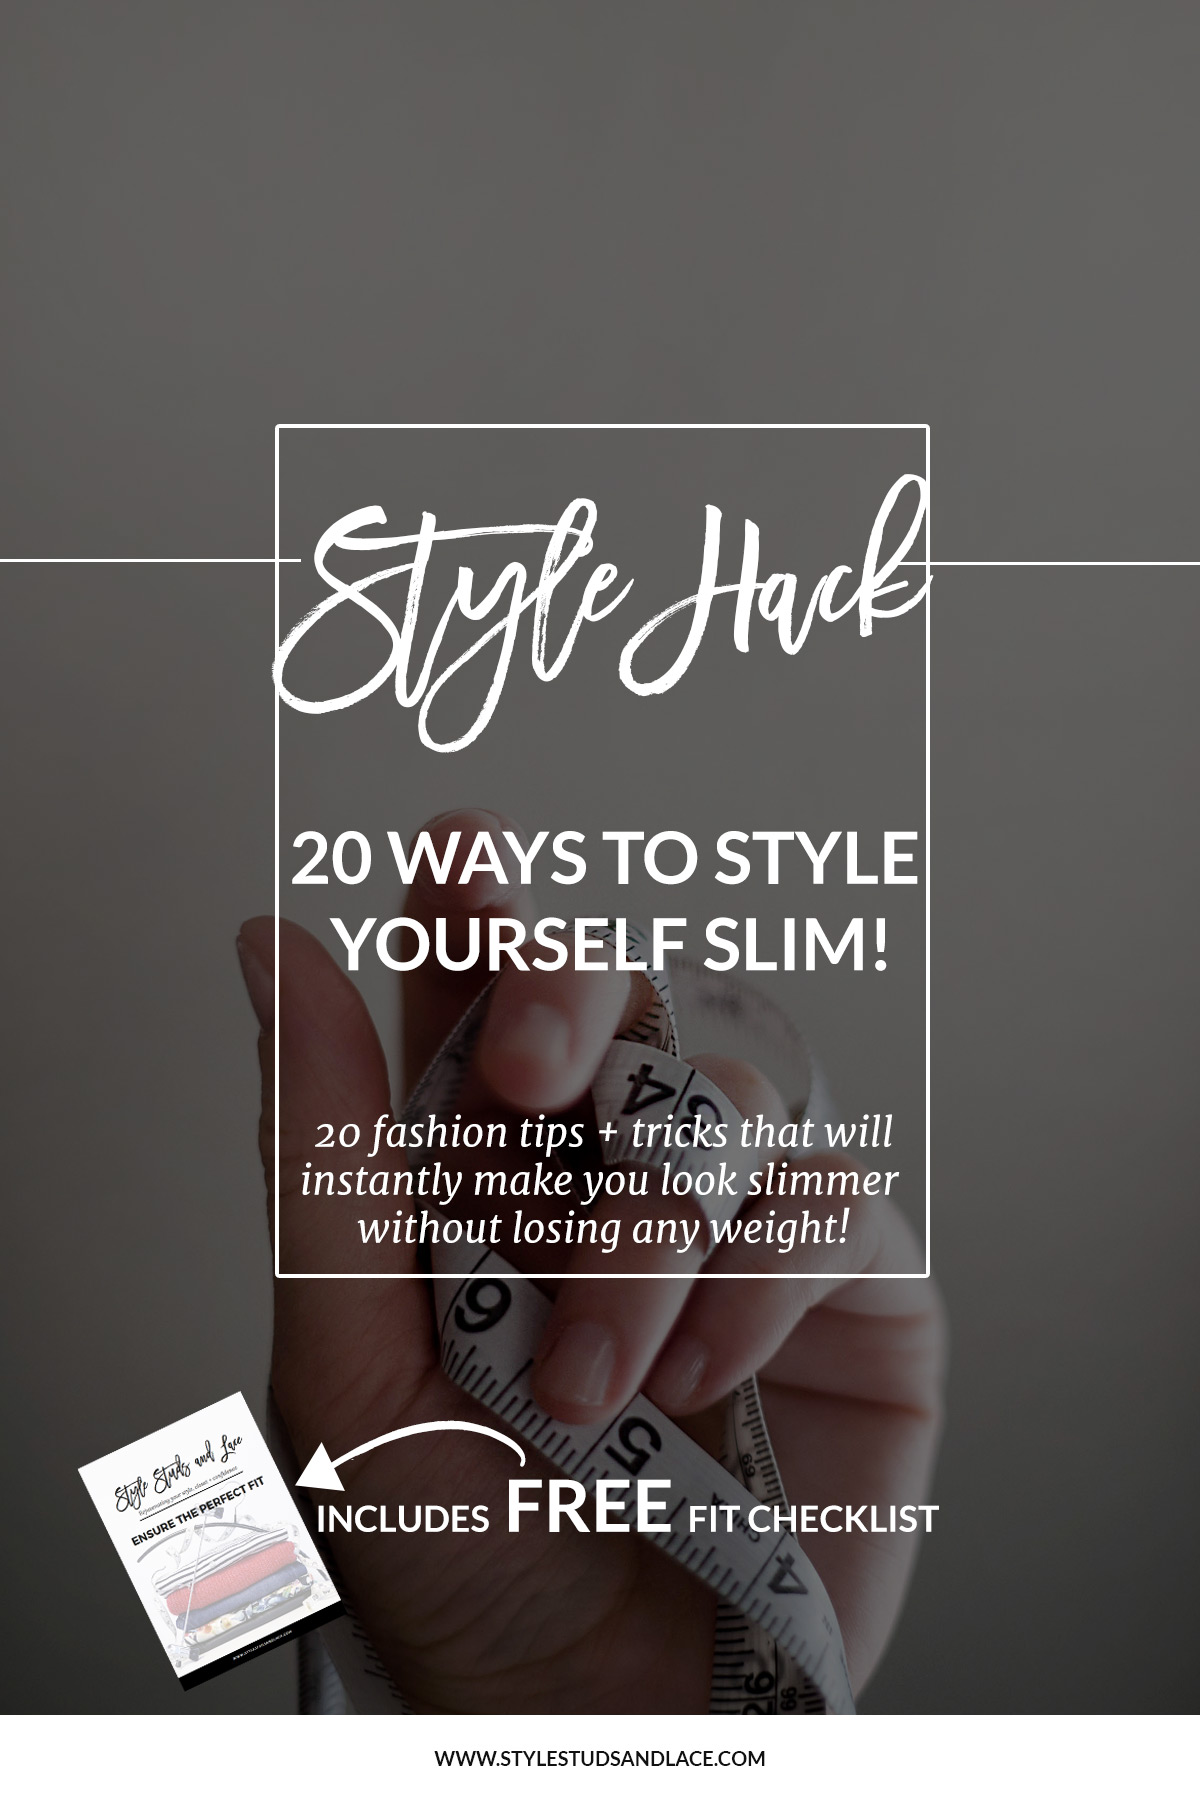 20 ways to look slimmer without losing weight | Style yourself slim, dress to look thin, style advice, fashion tricks, lose weight, look skinny, style tips, style hack, top tips, solutions, fit, size, women, large, curvy, oversized